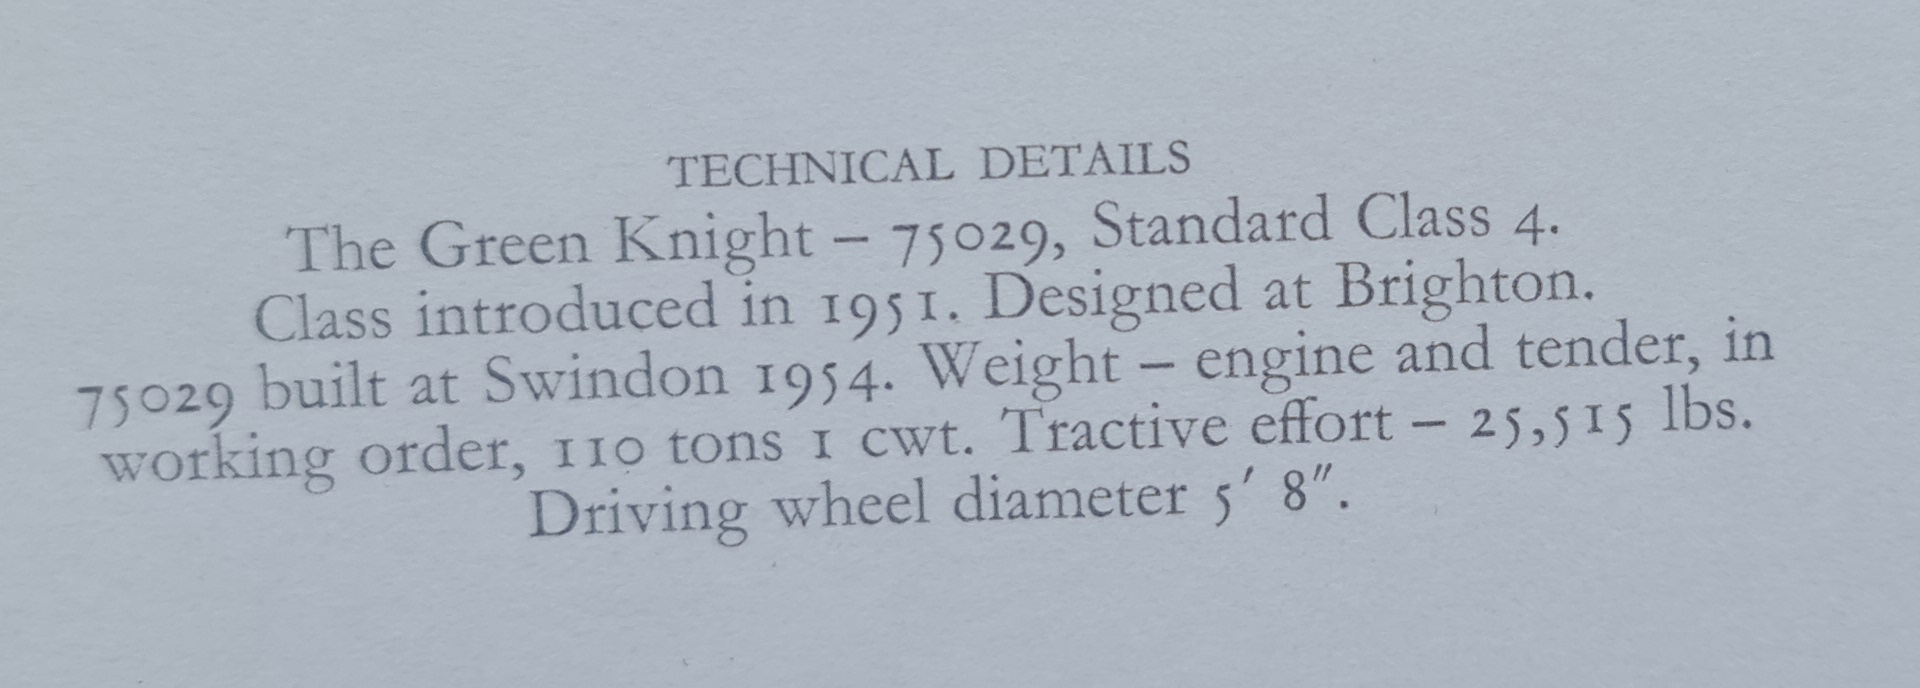 Green Knight technical details